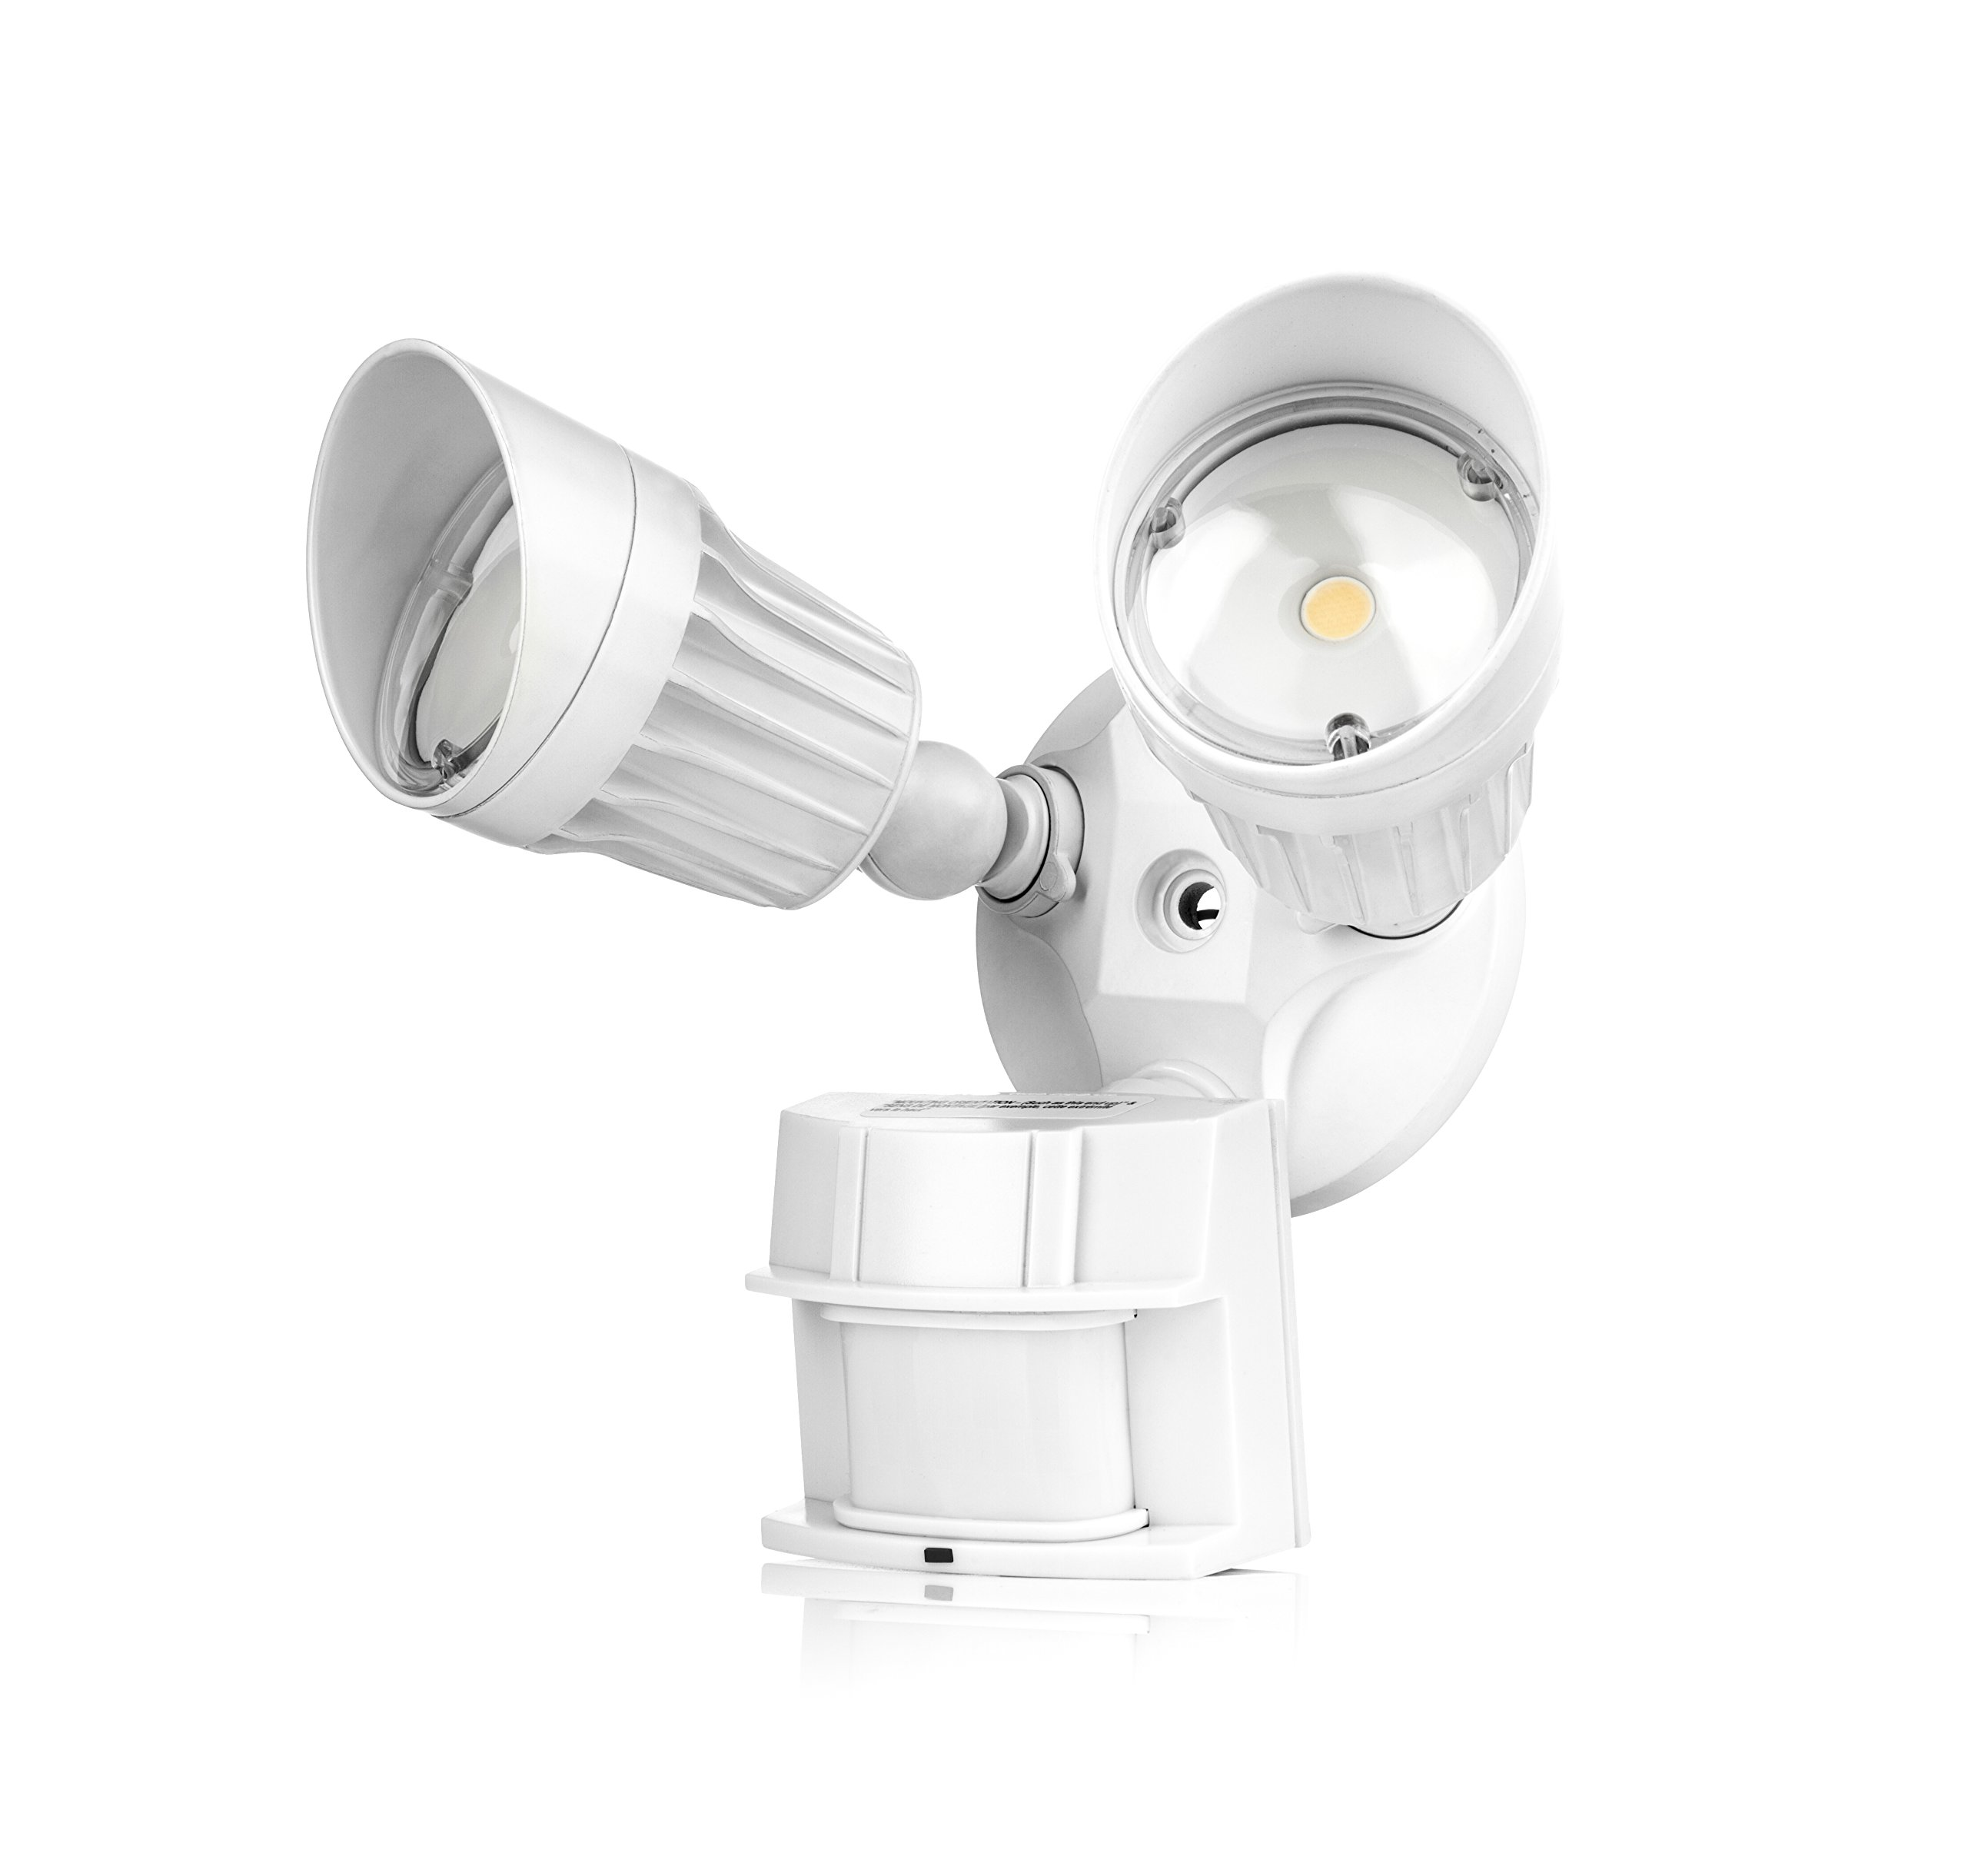 Outdoor Security Lights With Sensor Instructions: Hyperikon LED Security Light, 20W (100W Equivalent